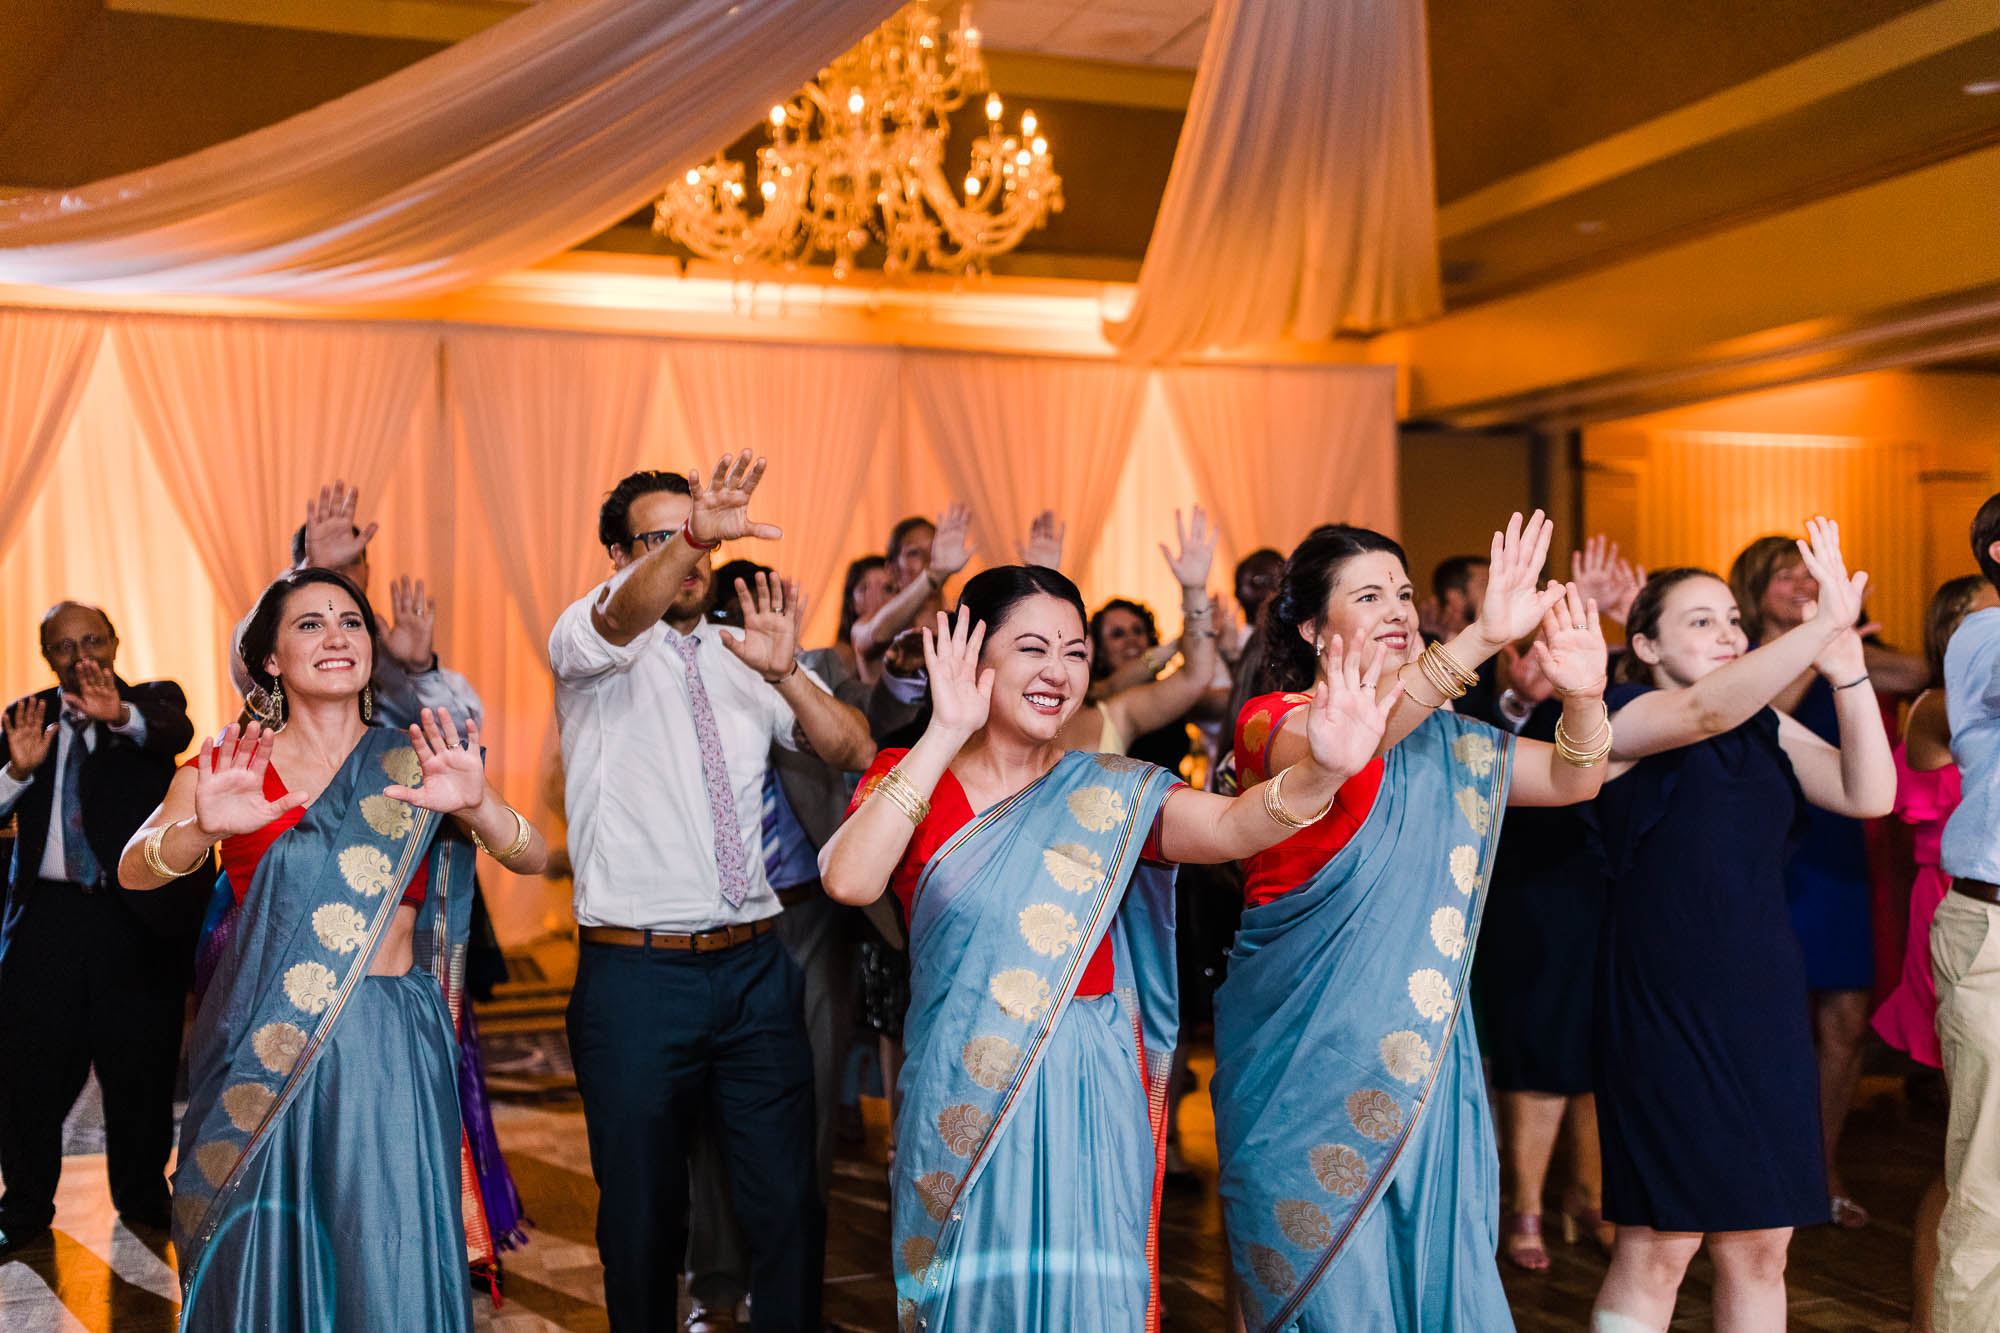 Scranton_Radisson_Hindu_Wedding-0177.jpg